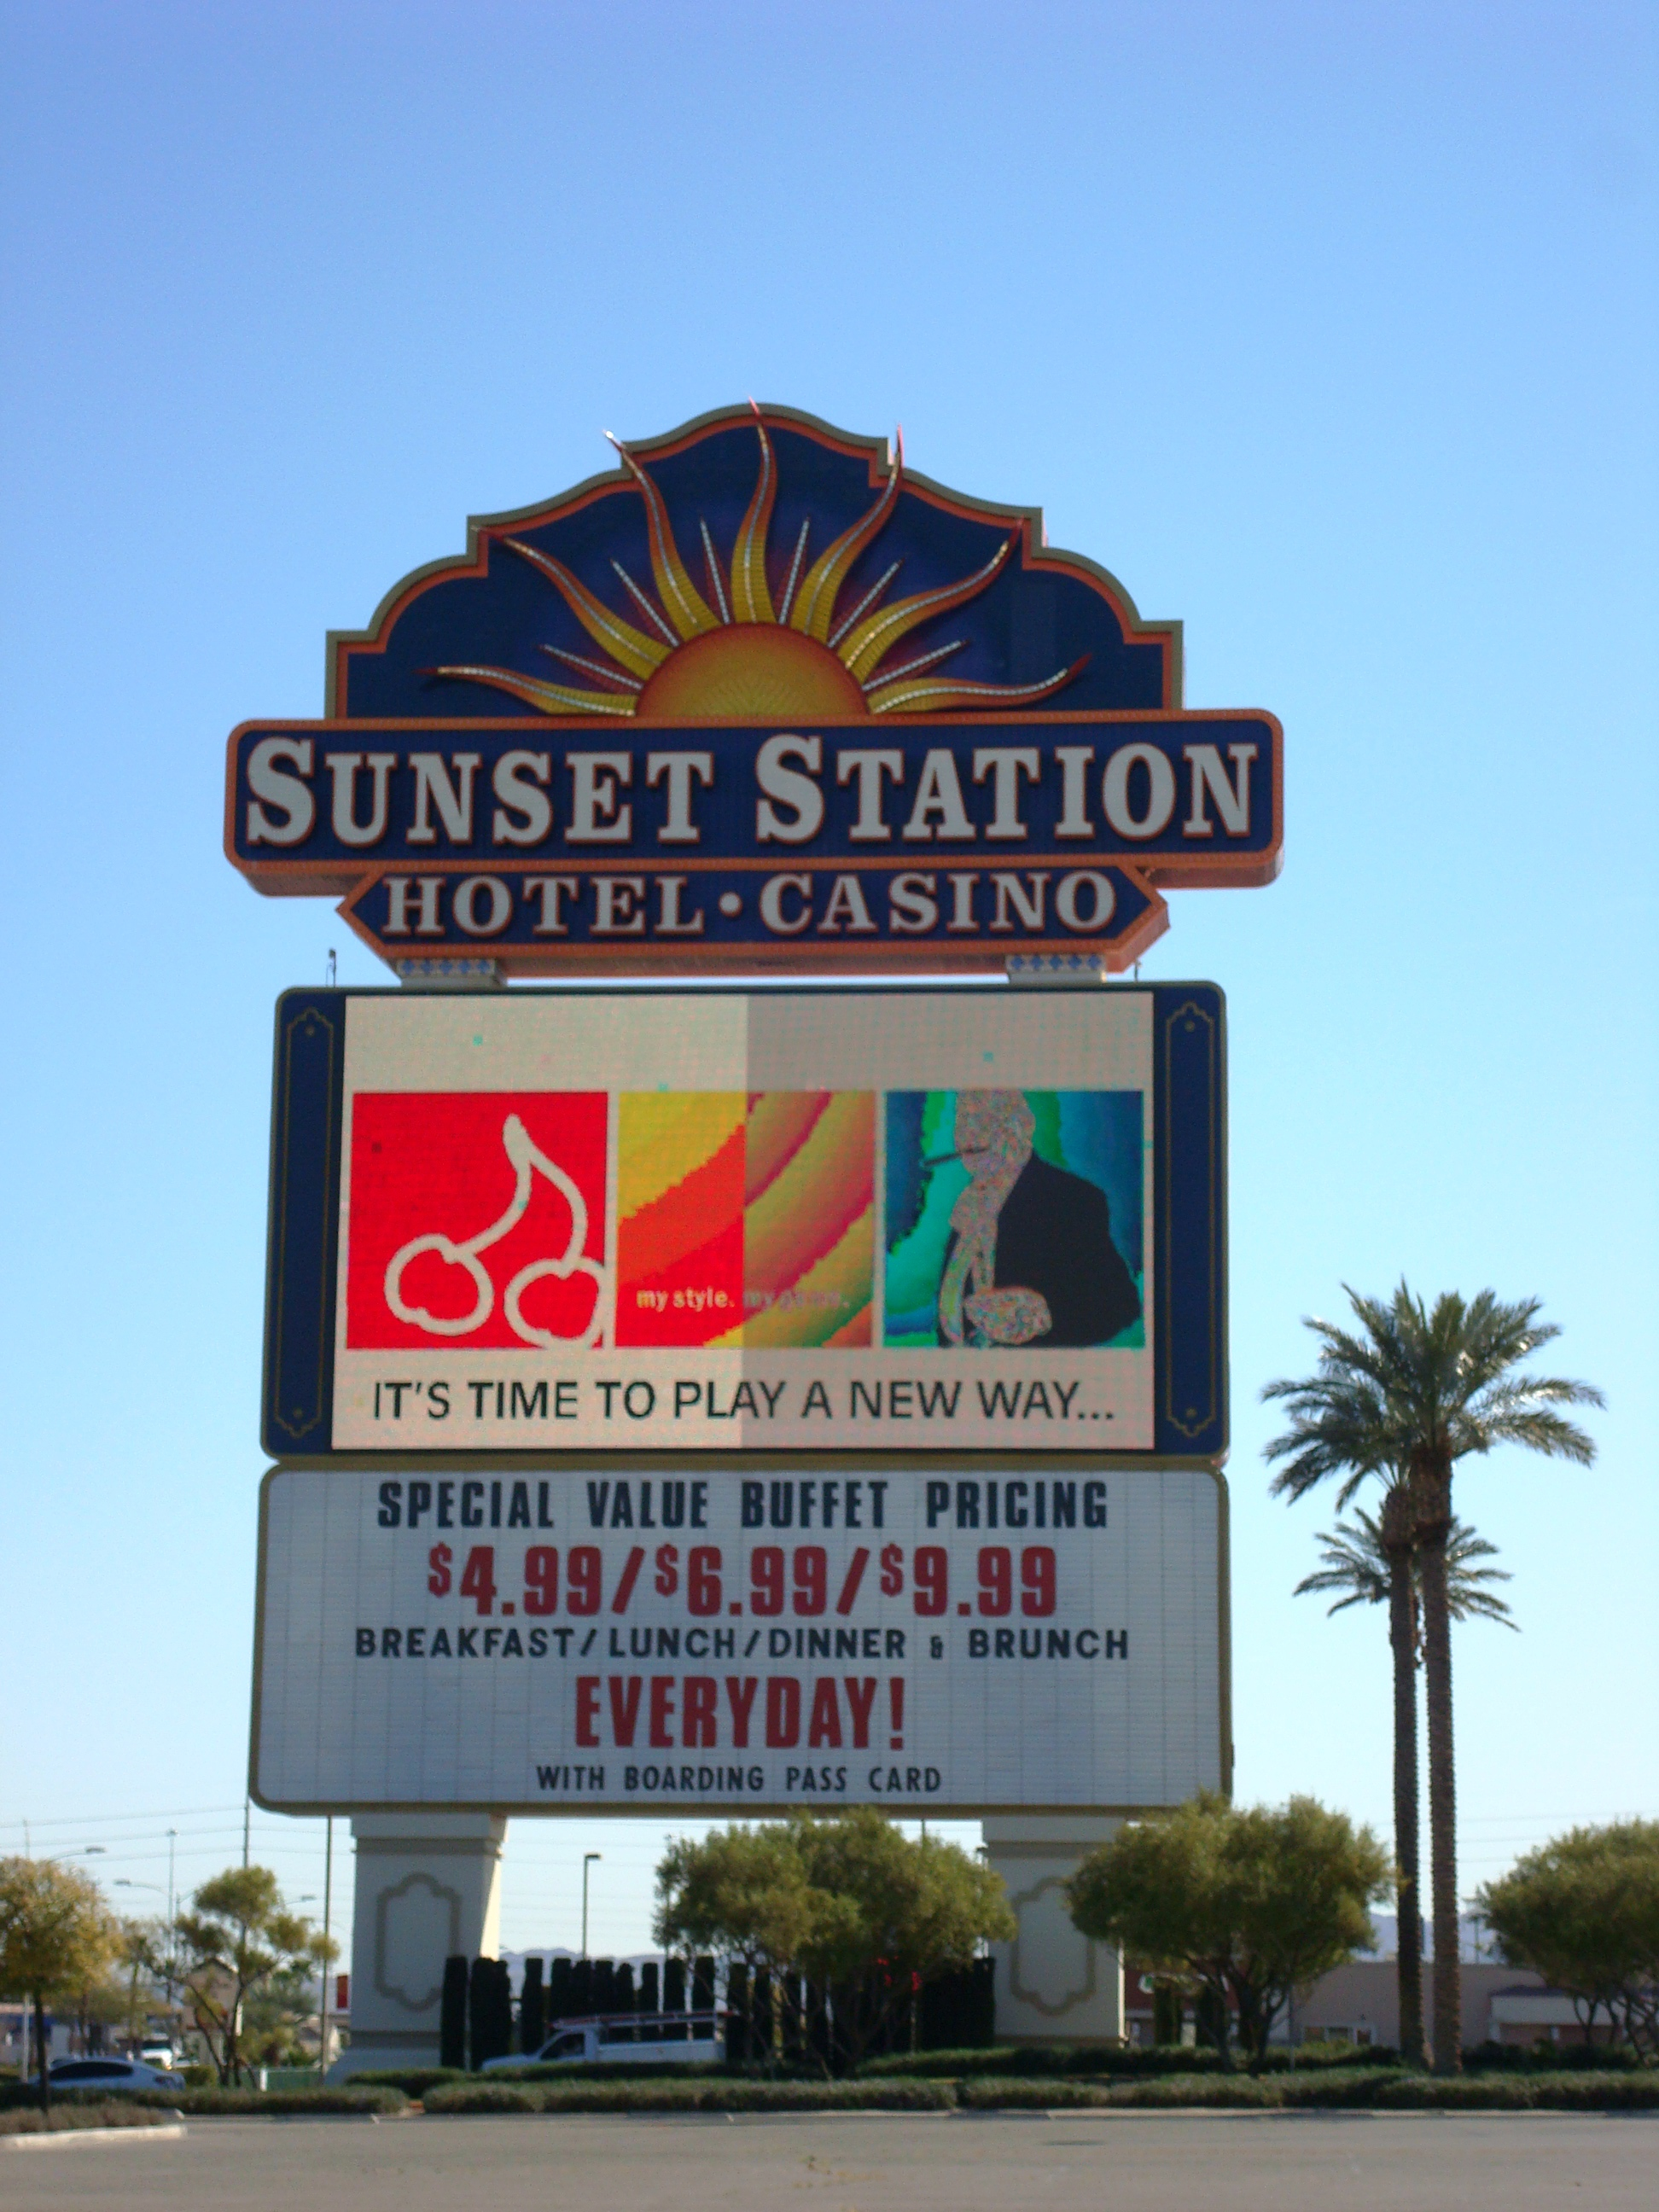 Sunset stations casino legal offshore gambling